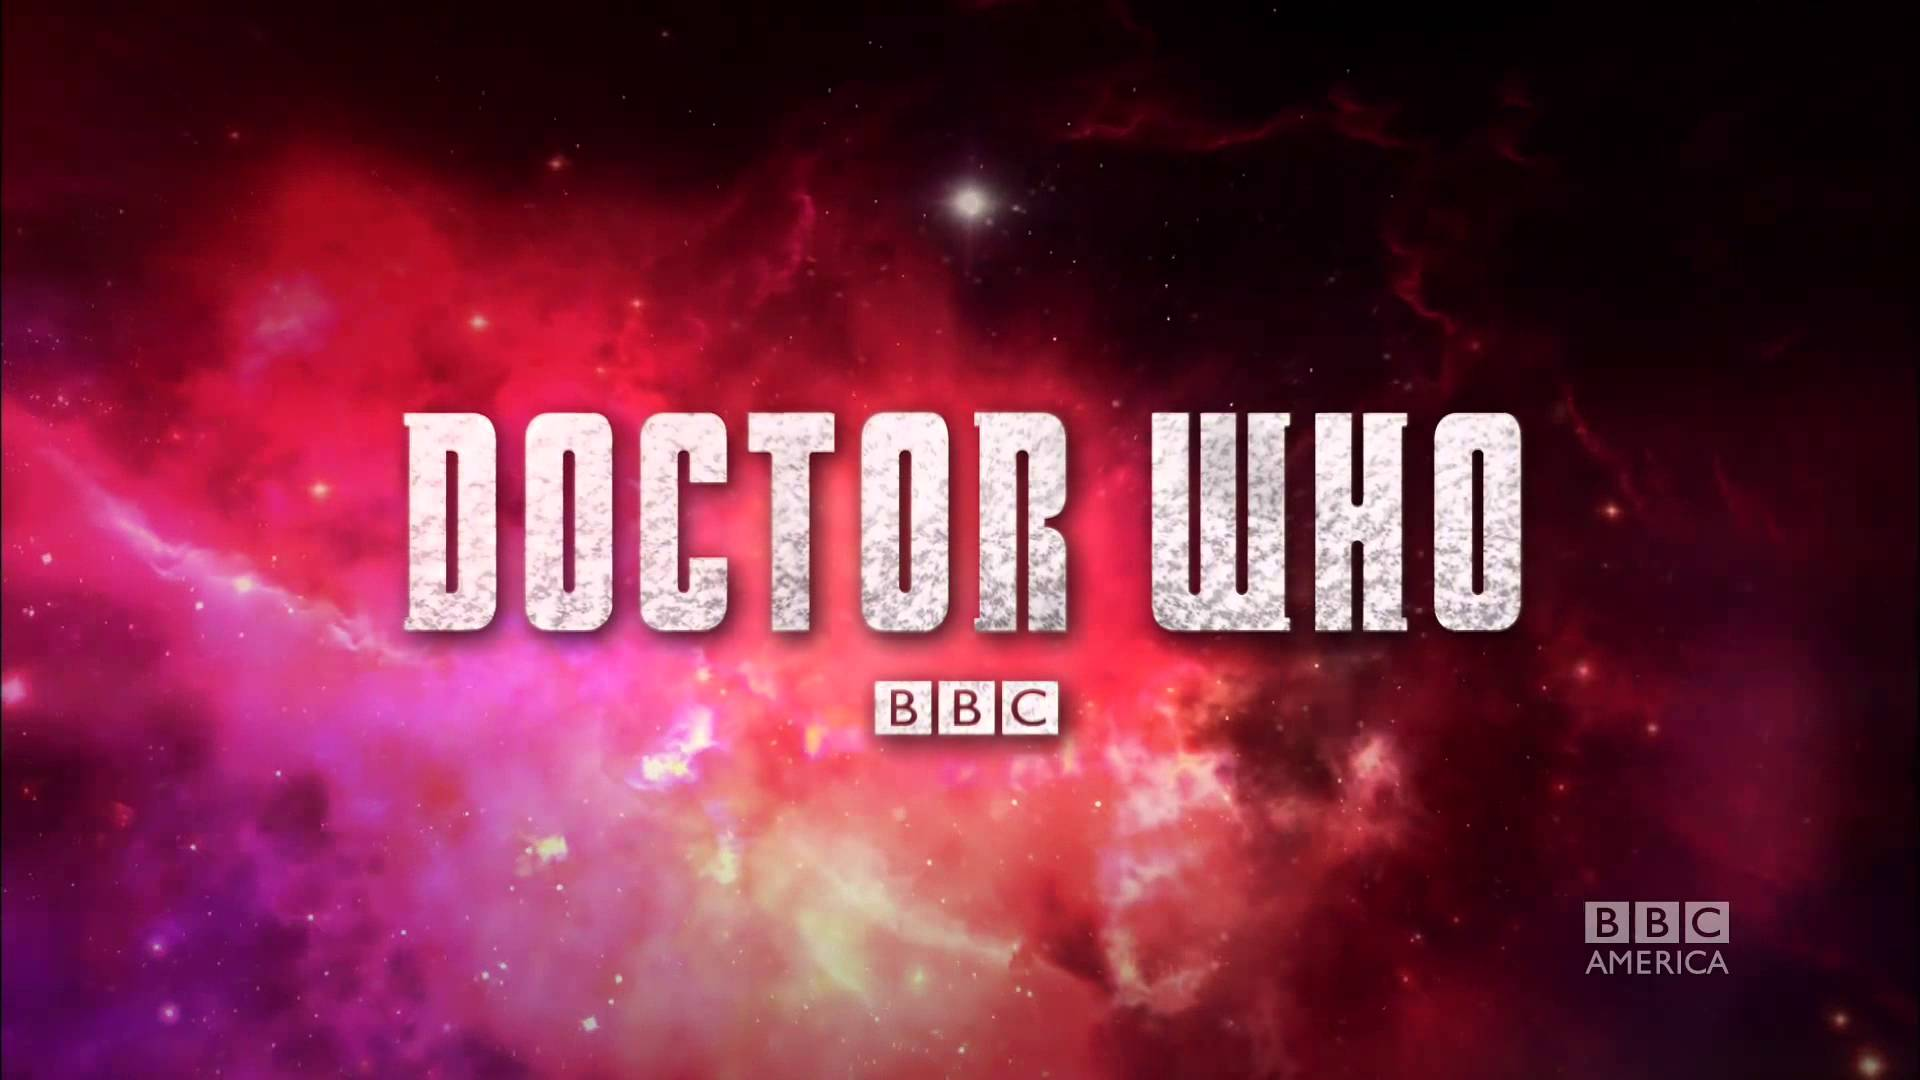 Doctor Who History Of A Time Lord